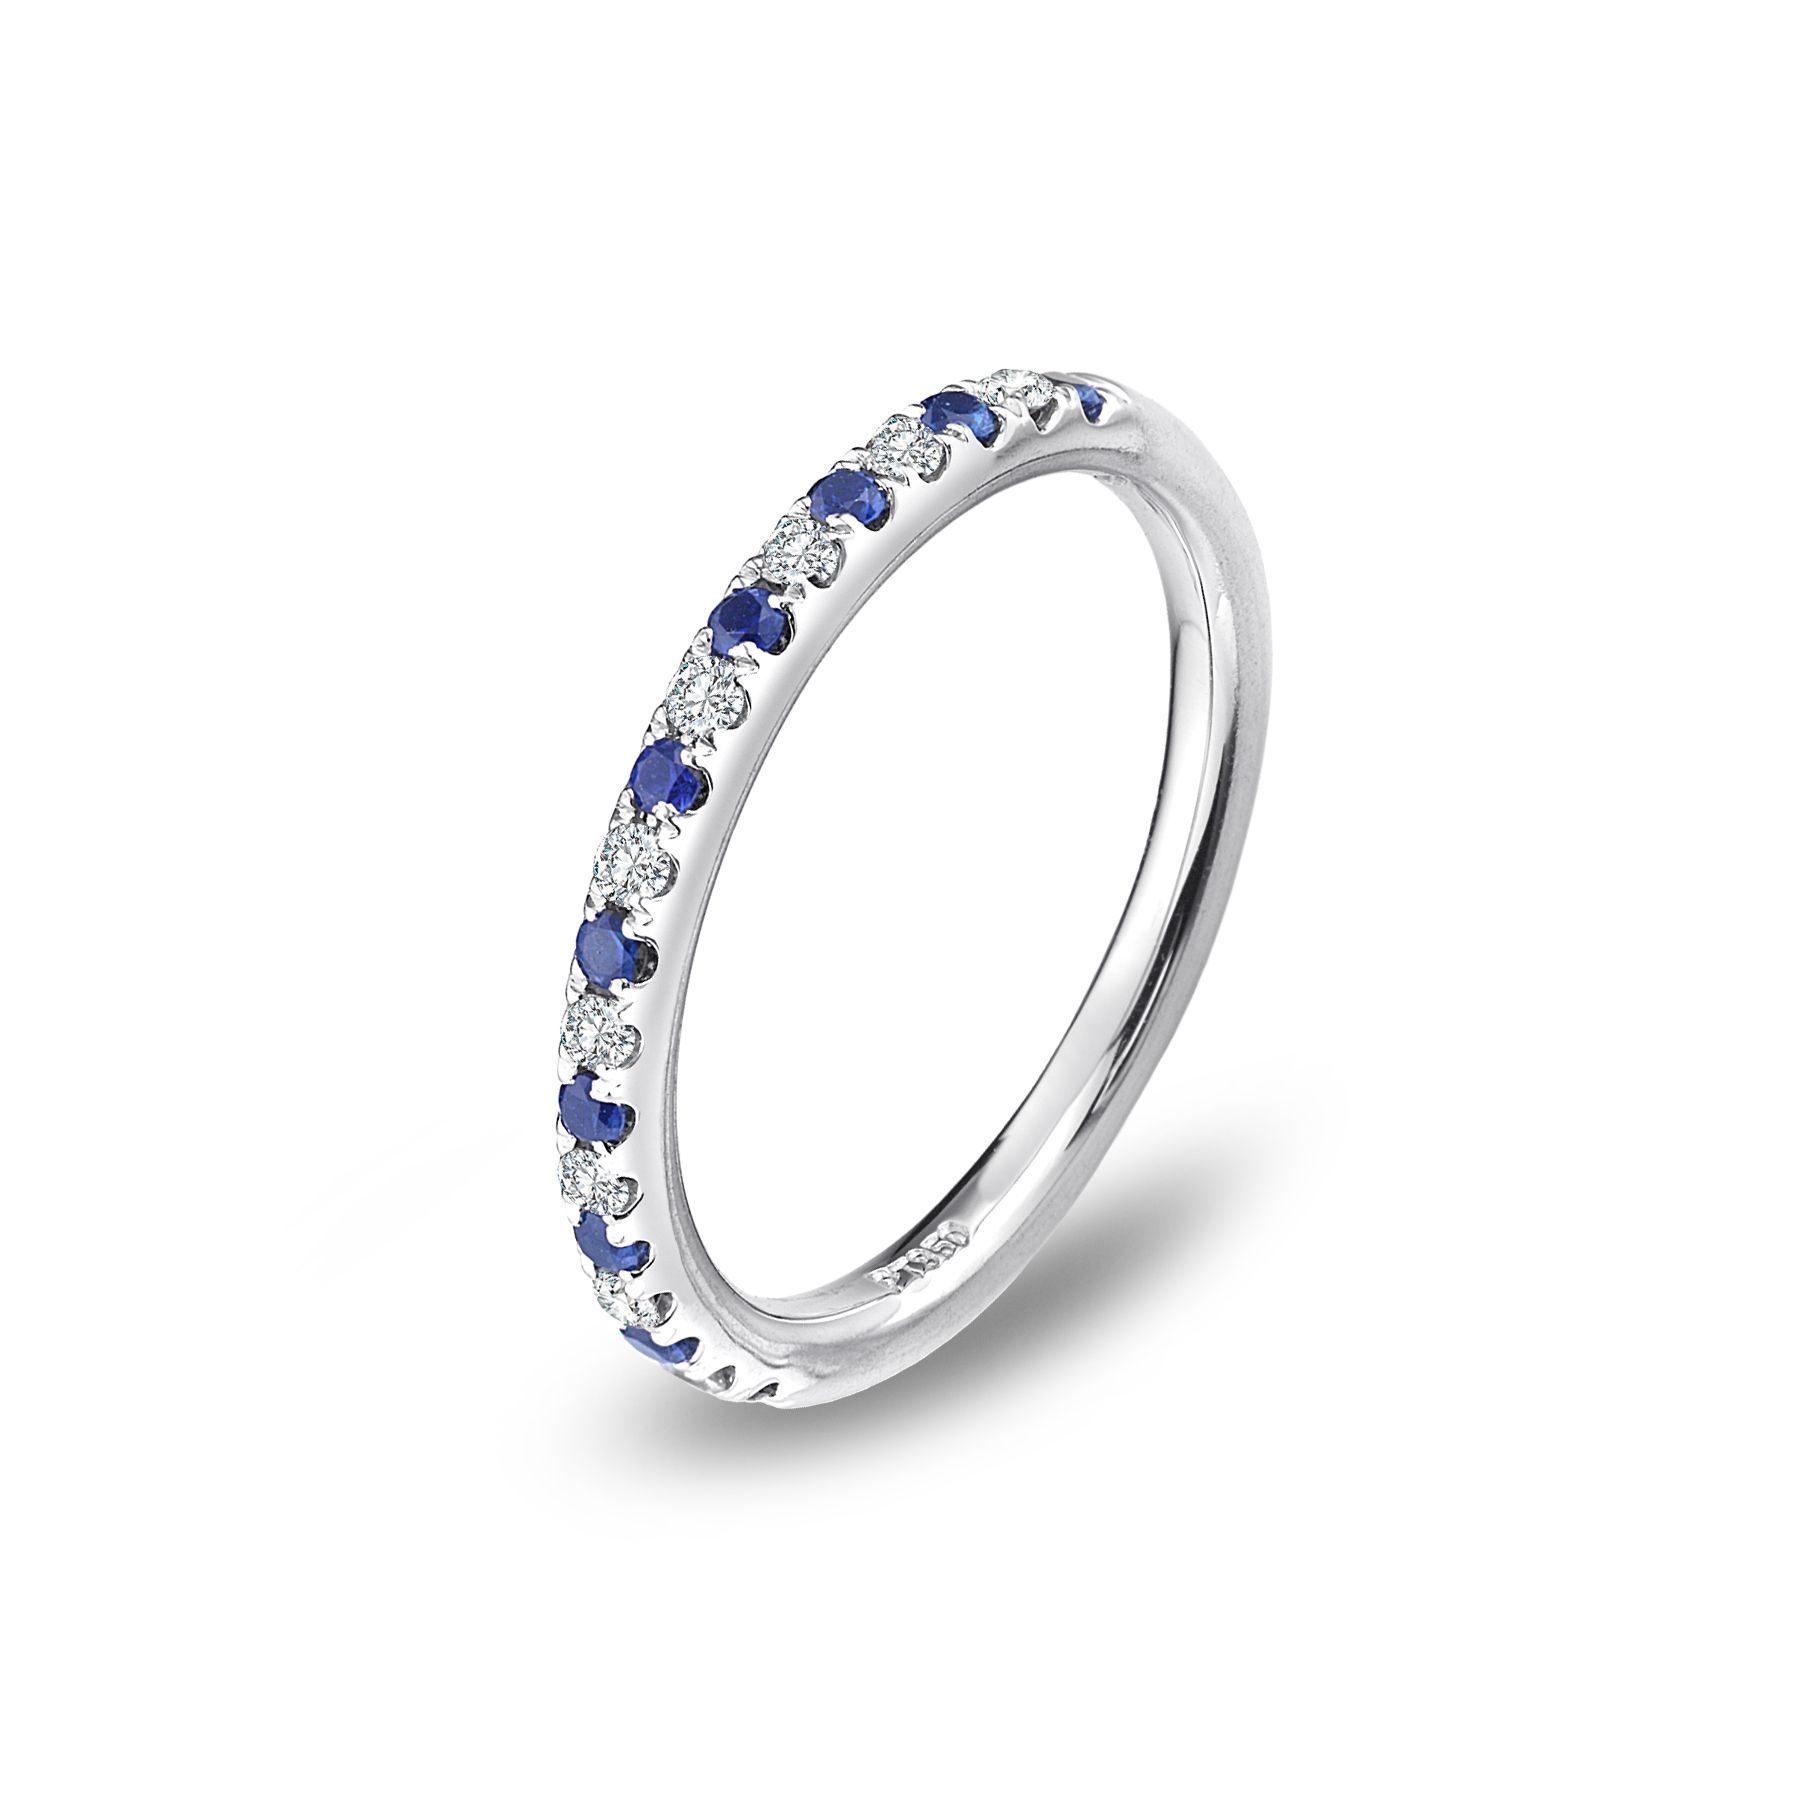 Delicate and brilliant this Blue Nile platinum wedding band